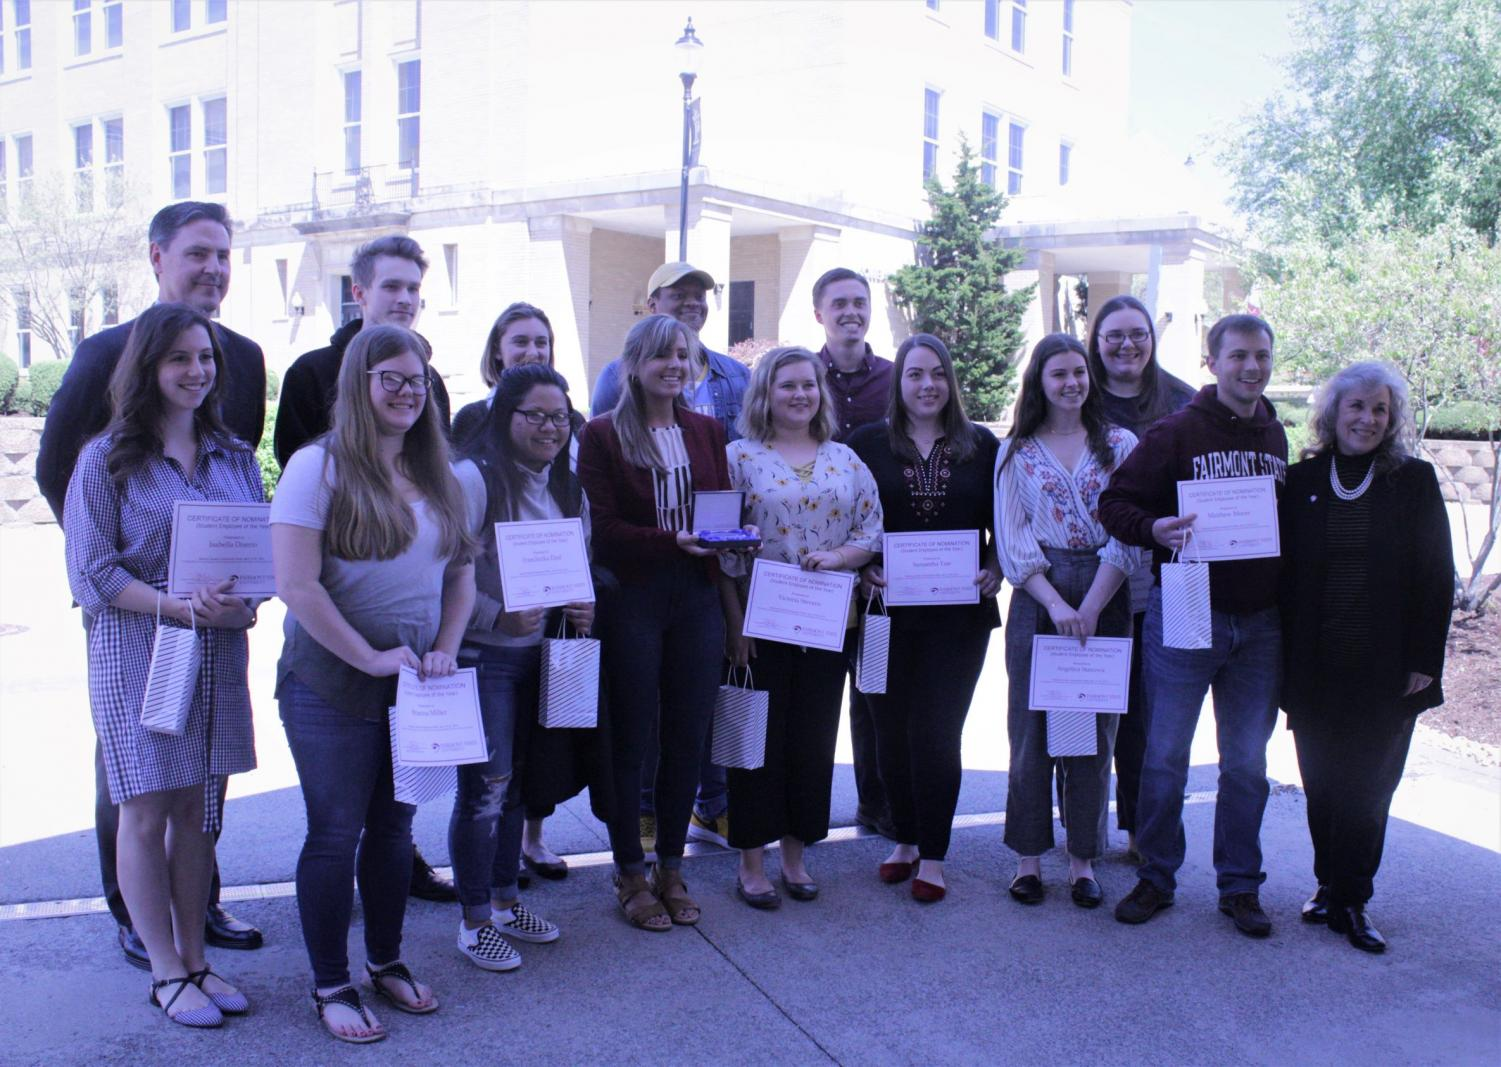 The Student Recognition and Appreciation Luncheon